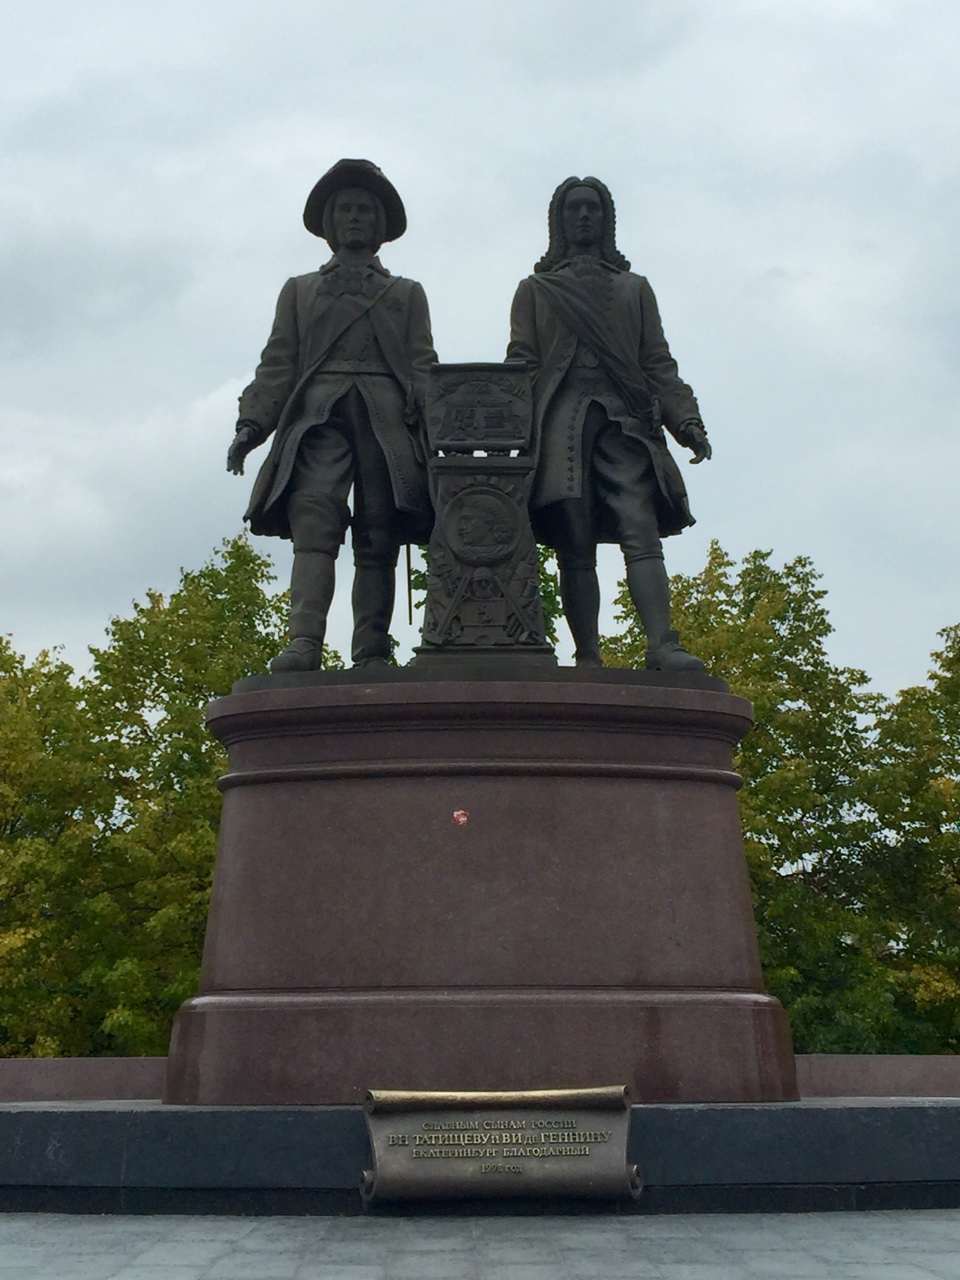 """Yekaterinburg, Russia    Statues of the two founders of Yekaterinburg (the original and his successor). Locals often use the memorial as a meeting spot, referring to the two as """"Beavis and Butthead."""""""